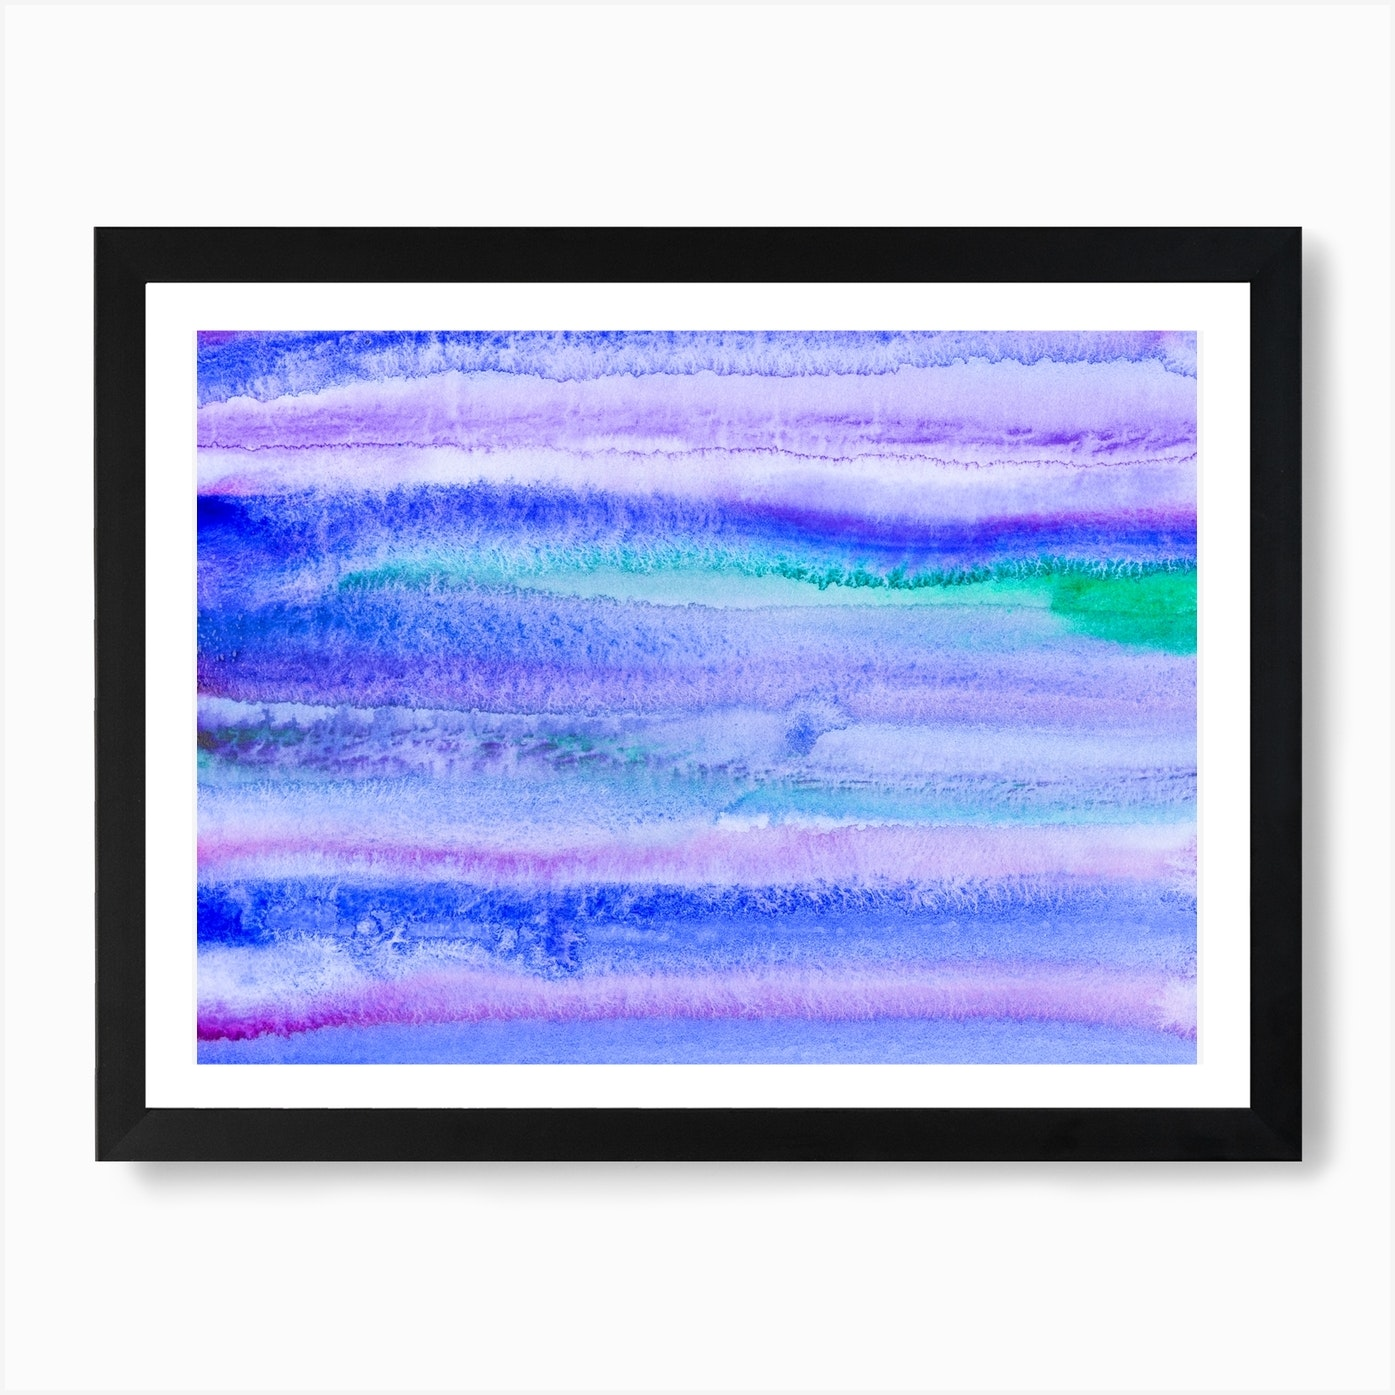 Abstract Blue Landscape Art Print